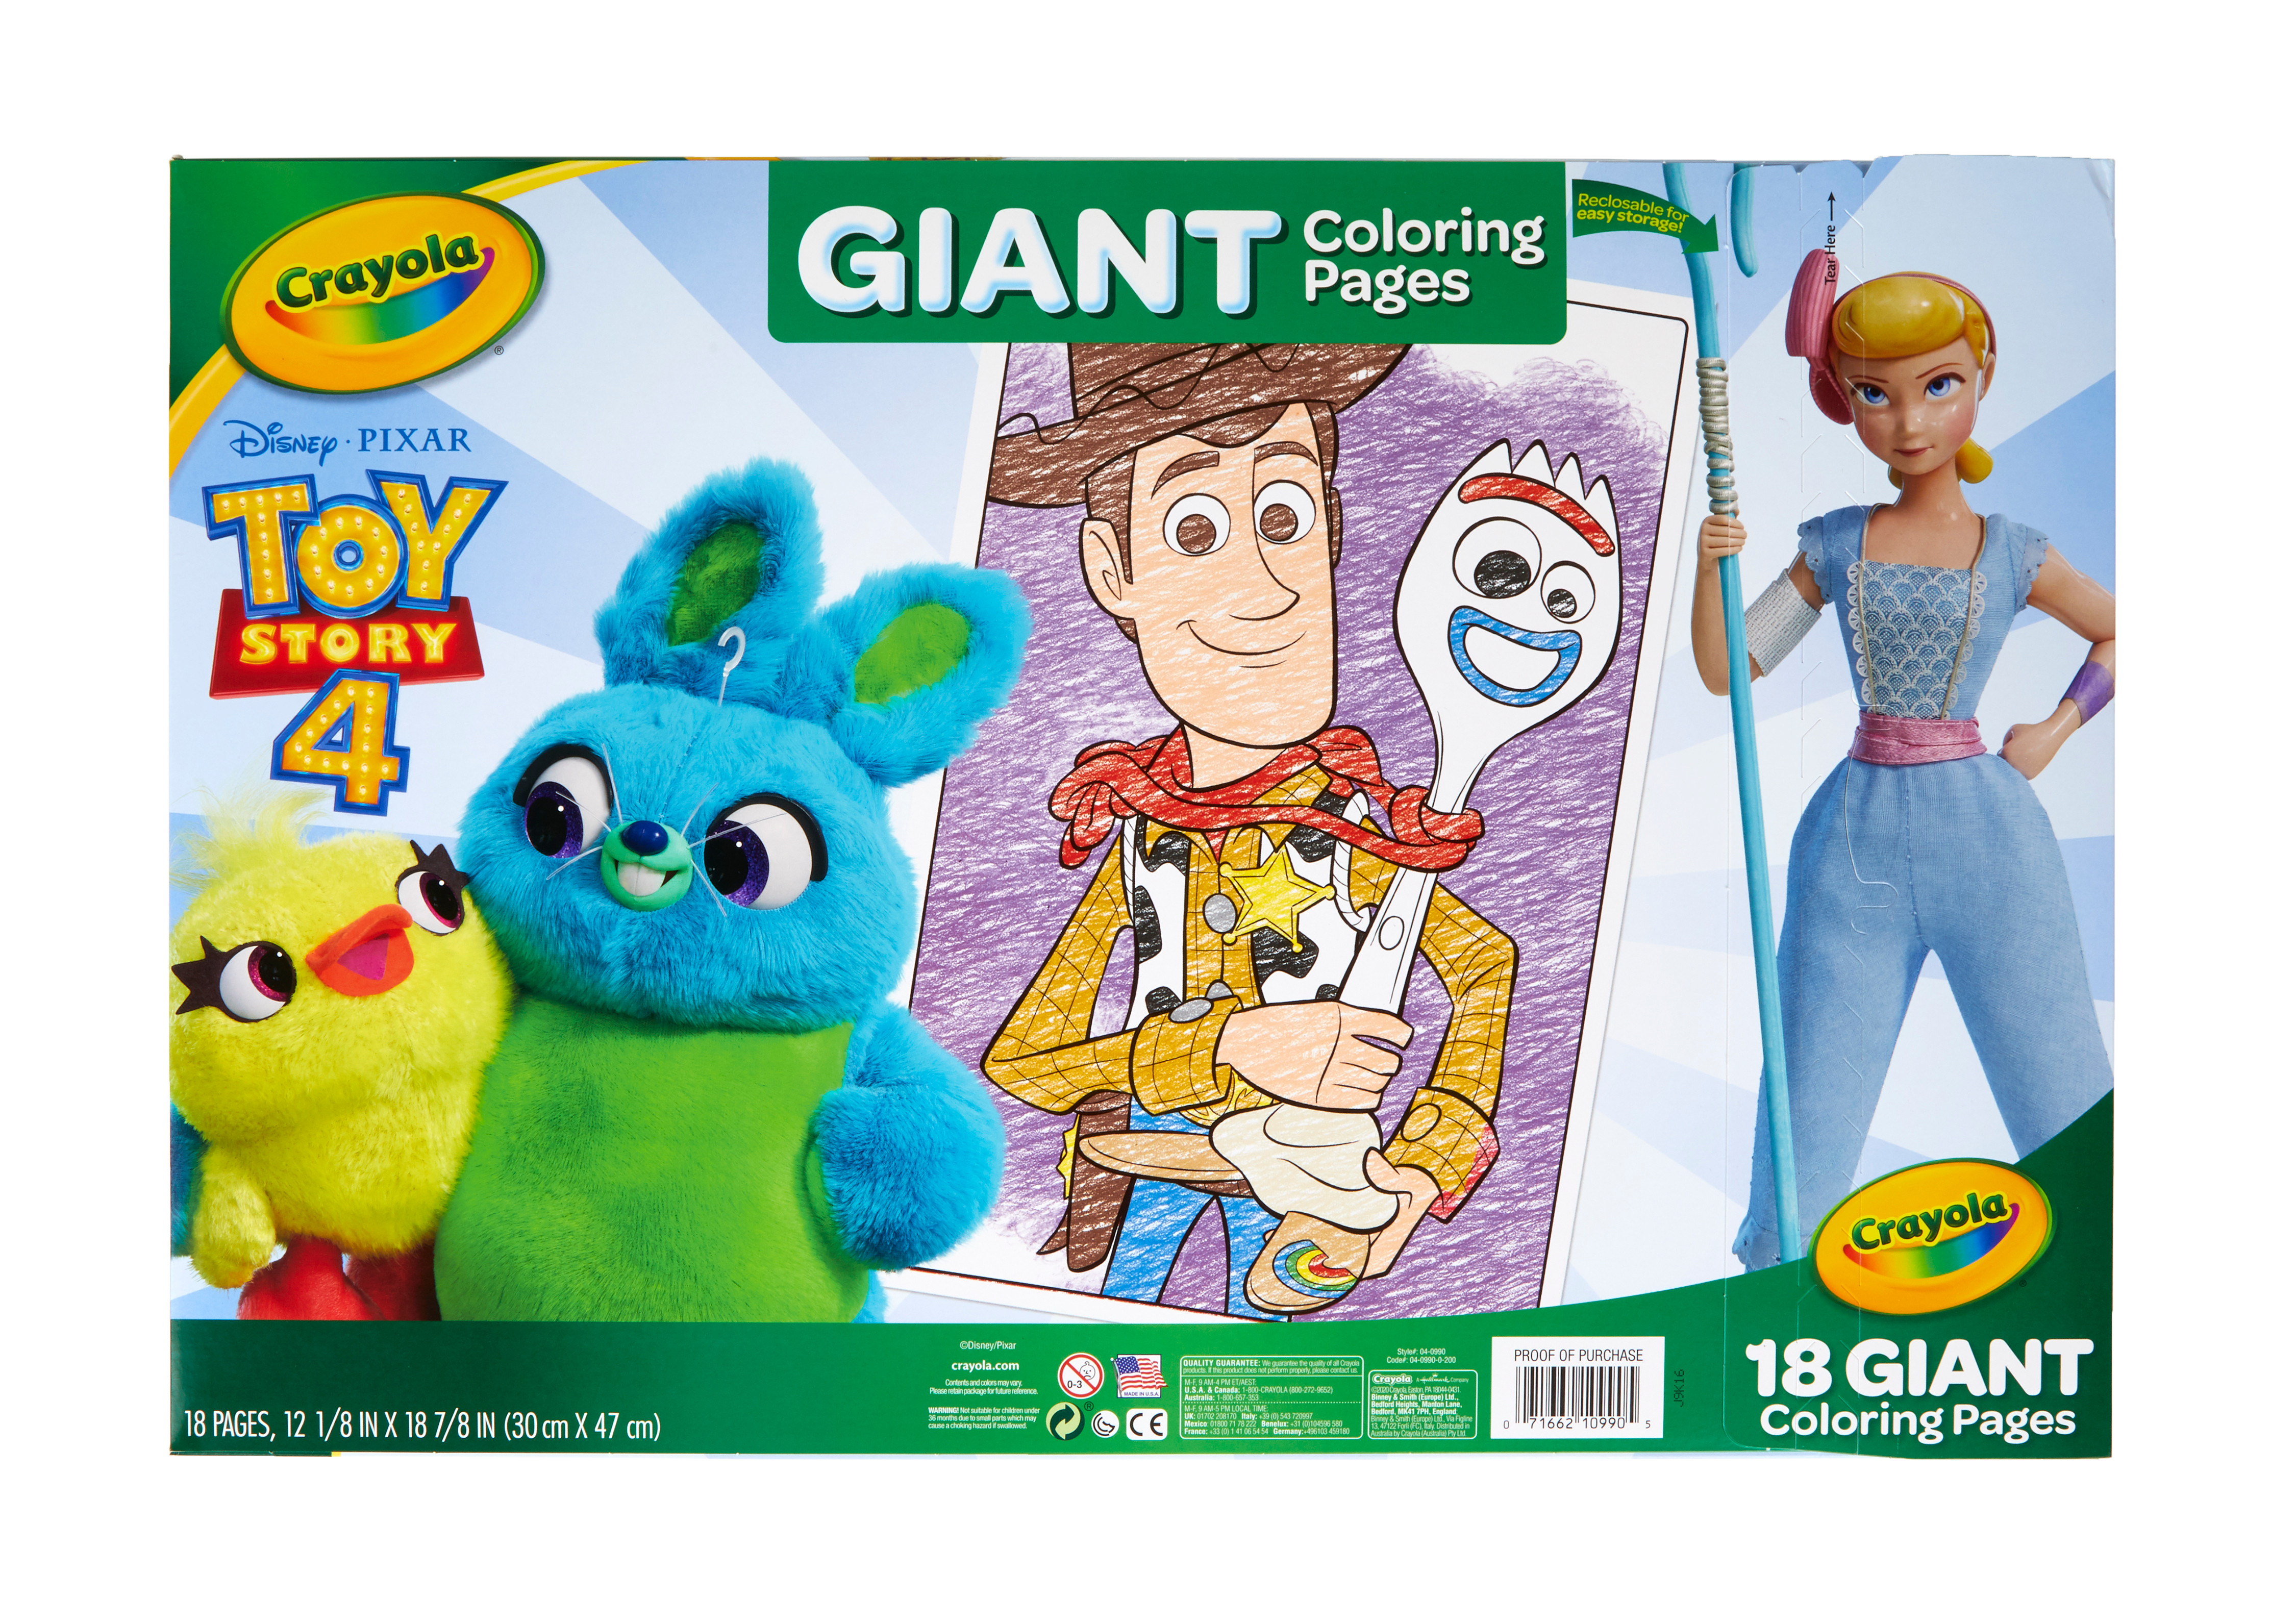 Crayola Toy Story 4 Giant Coloring Pages 18 Pages Child Unisex Walmart Com Walmart Com